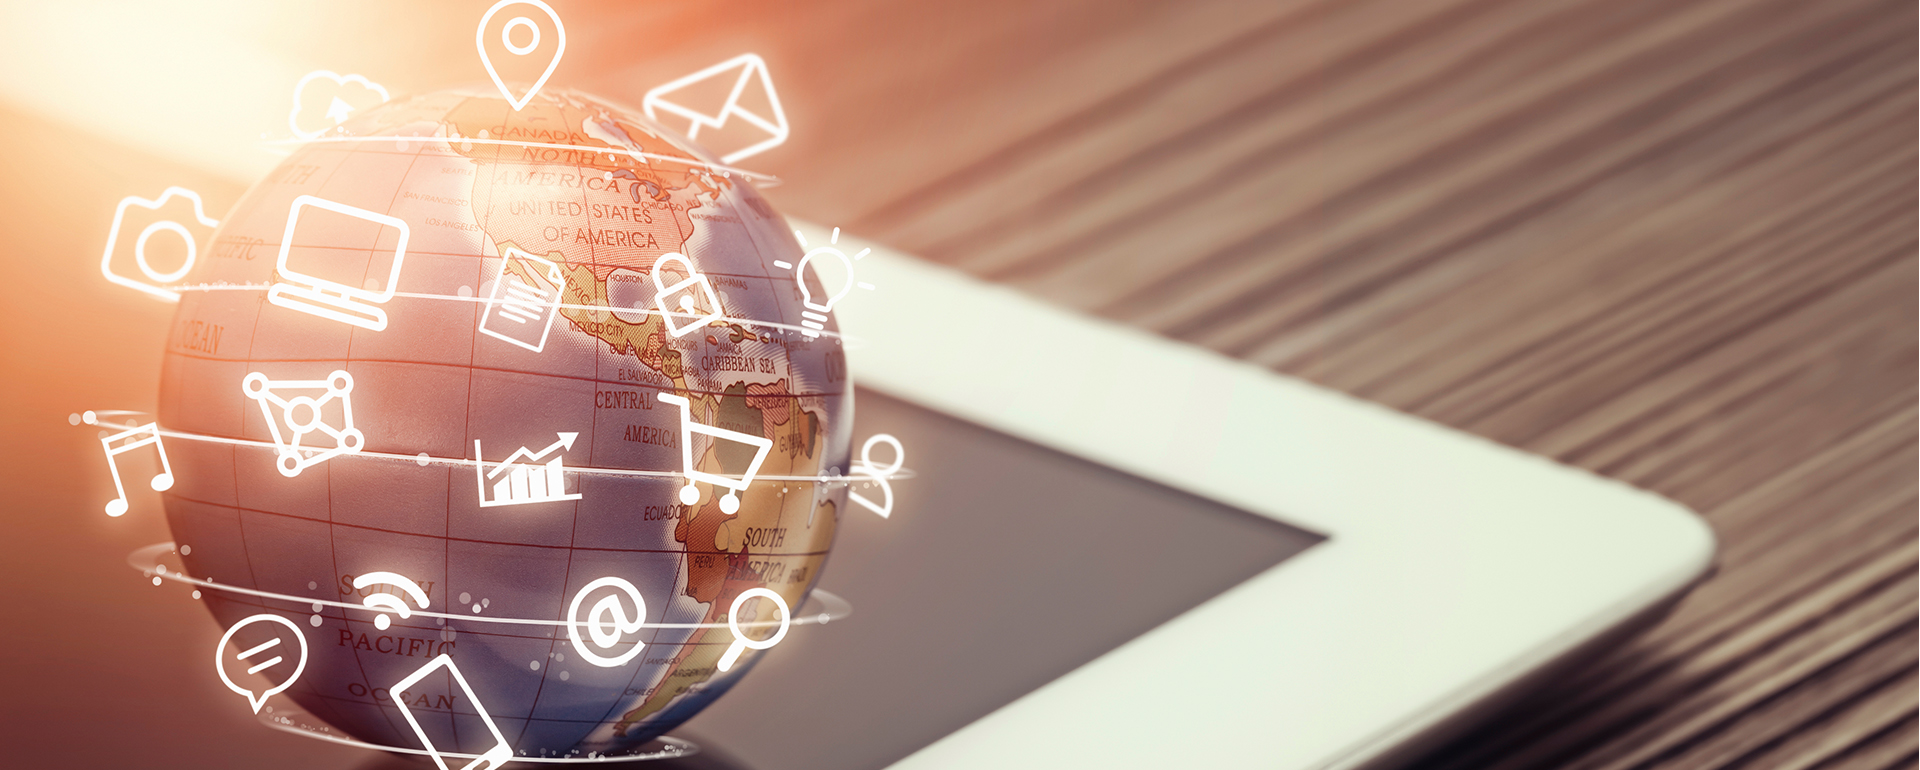 Digital Marketing Trends to Watch Out for in 2019